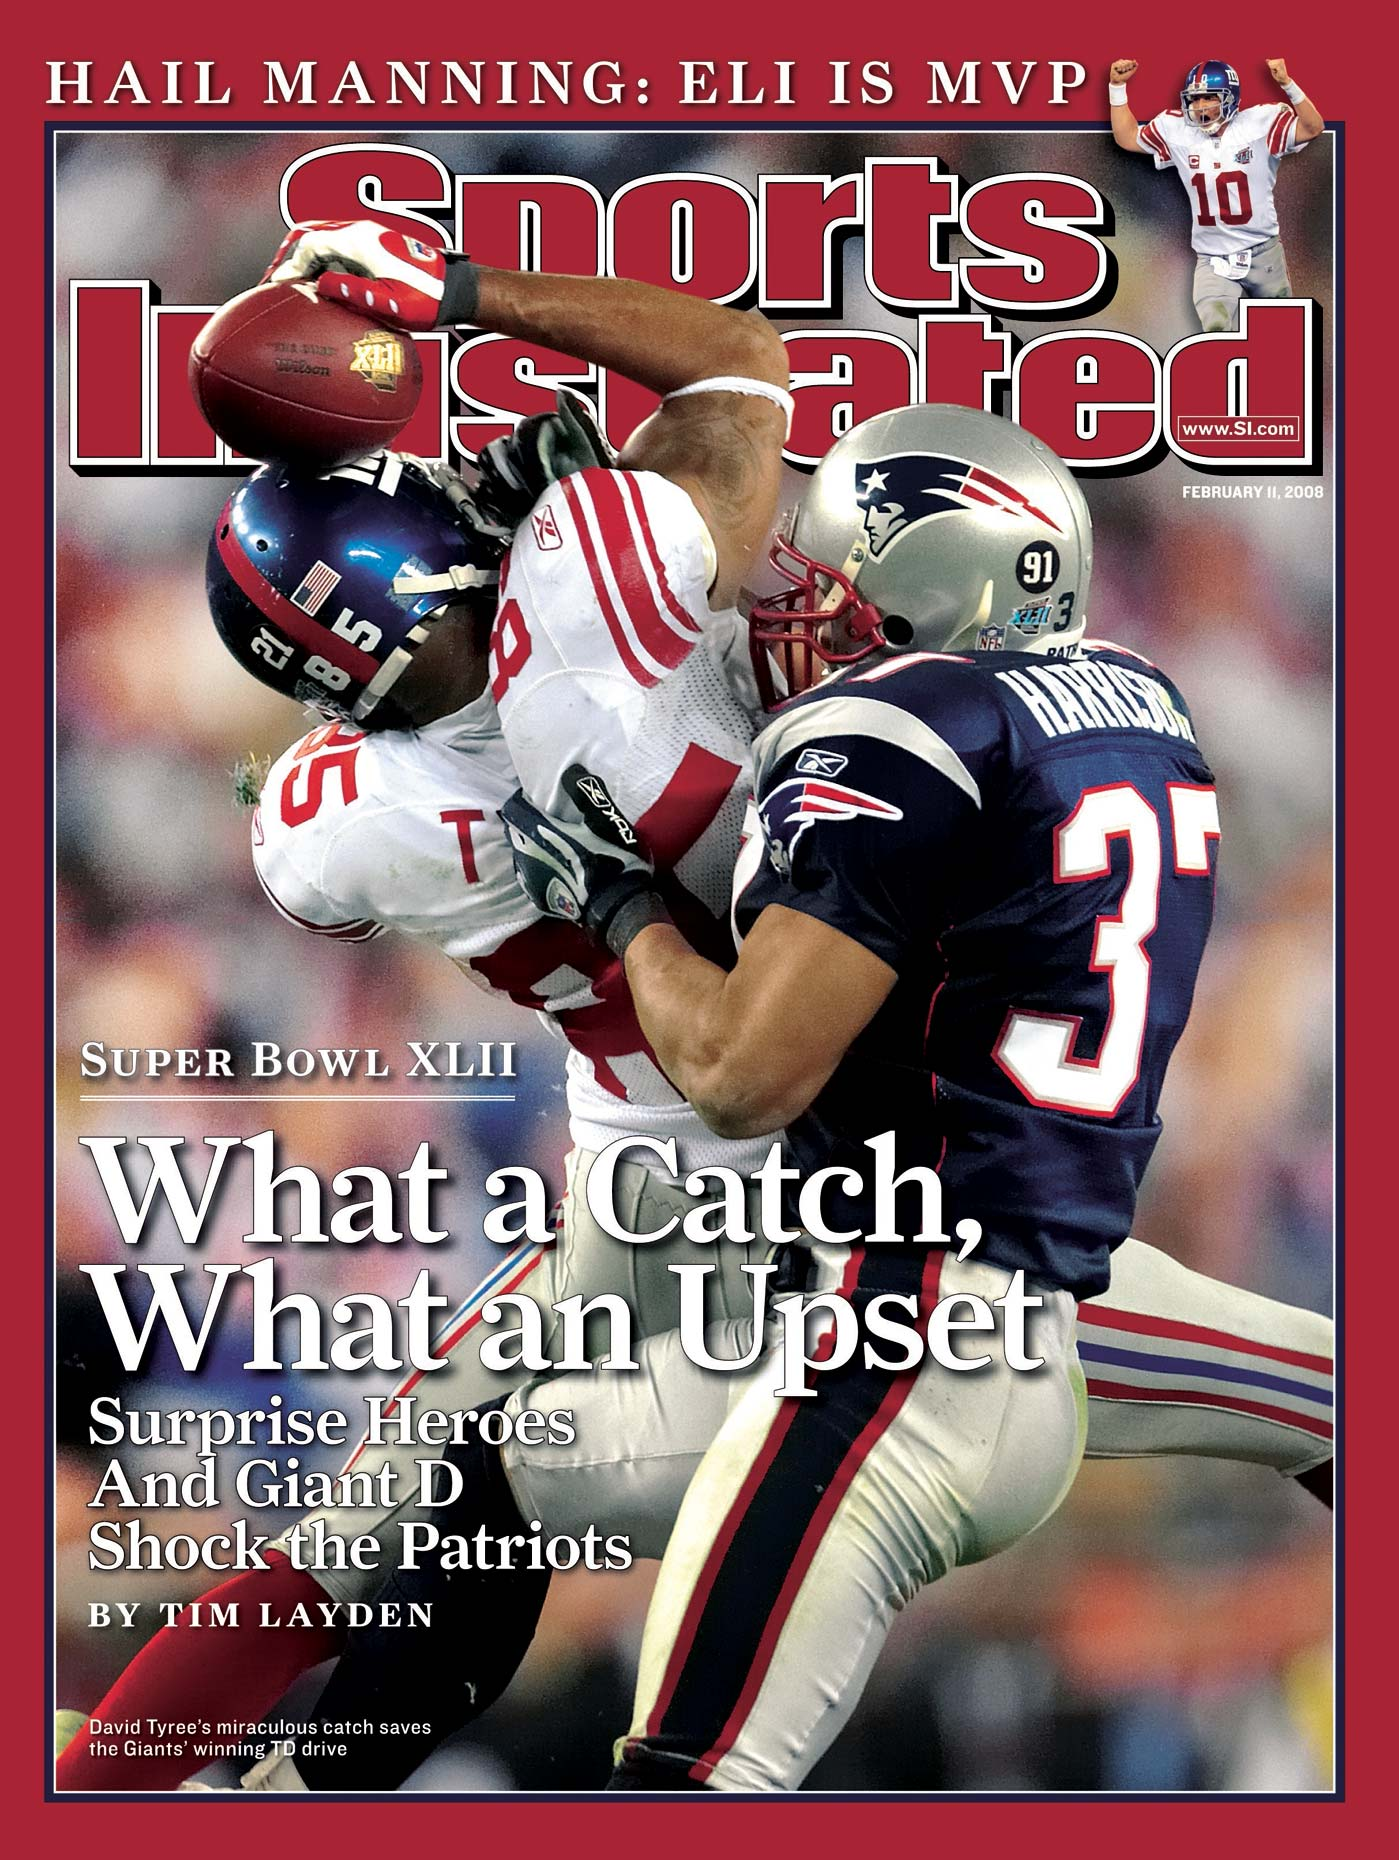 David Tyree | Helmet Catch | Sports Illustrated Cover | Super Bowl